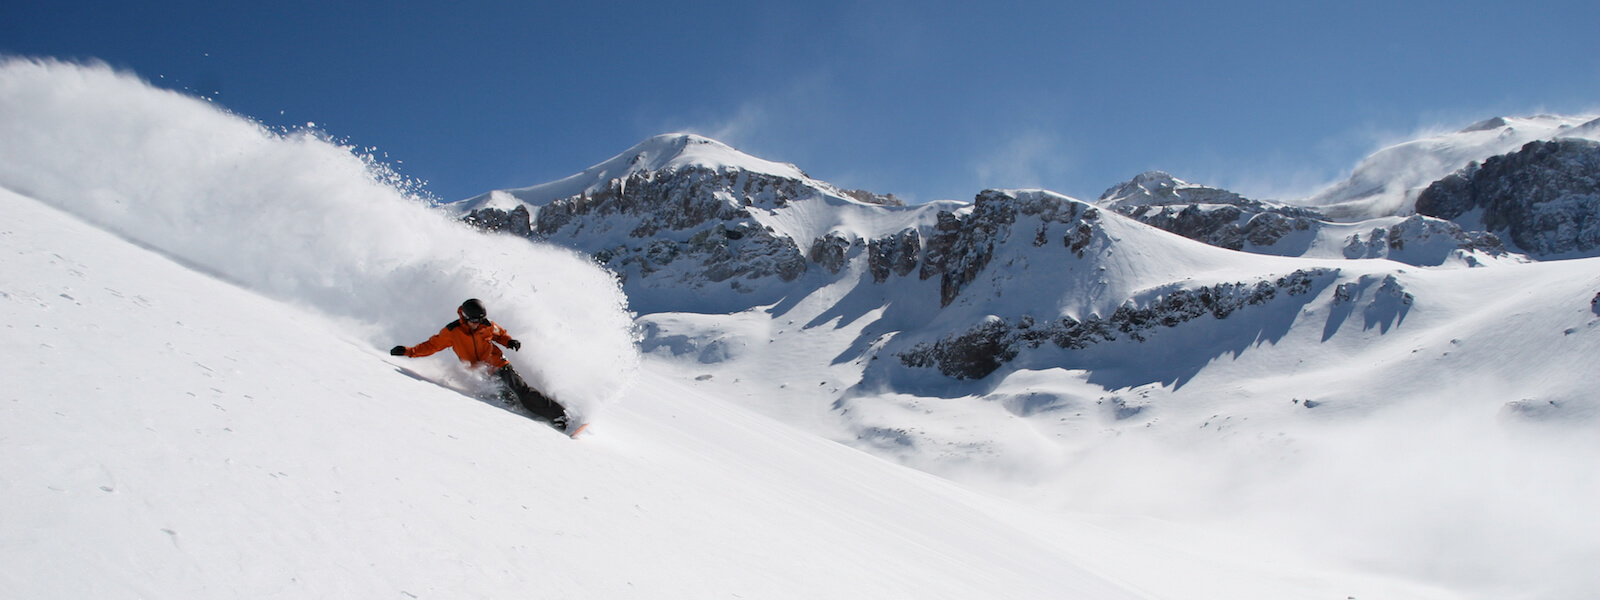 snowboarding in valle nevado chile